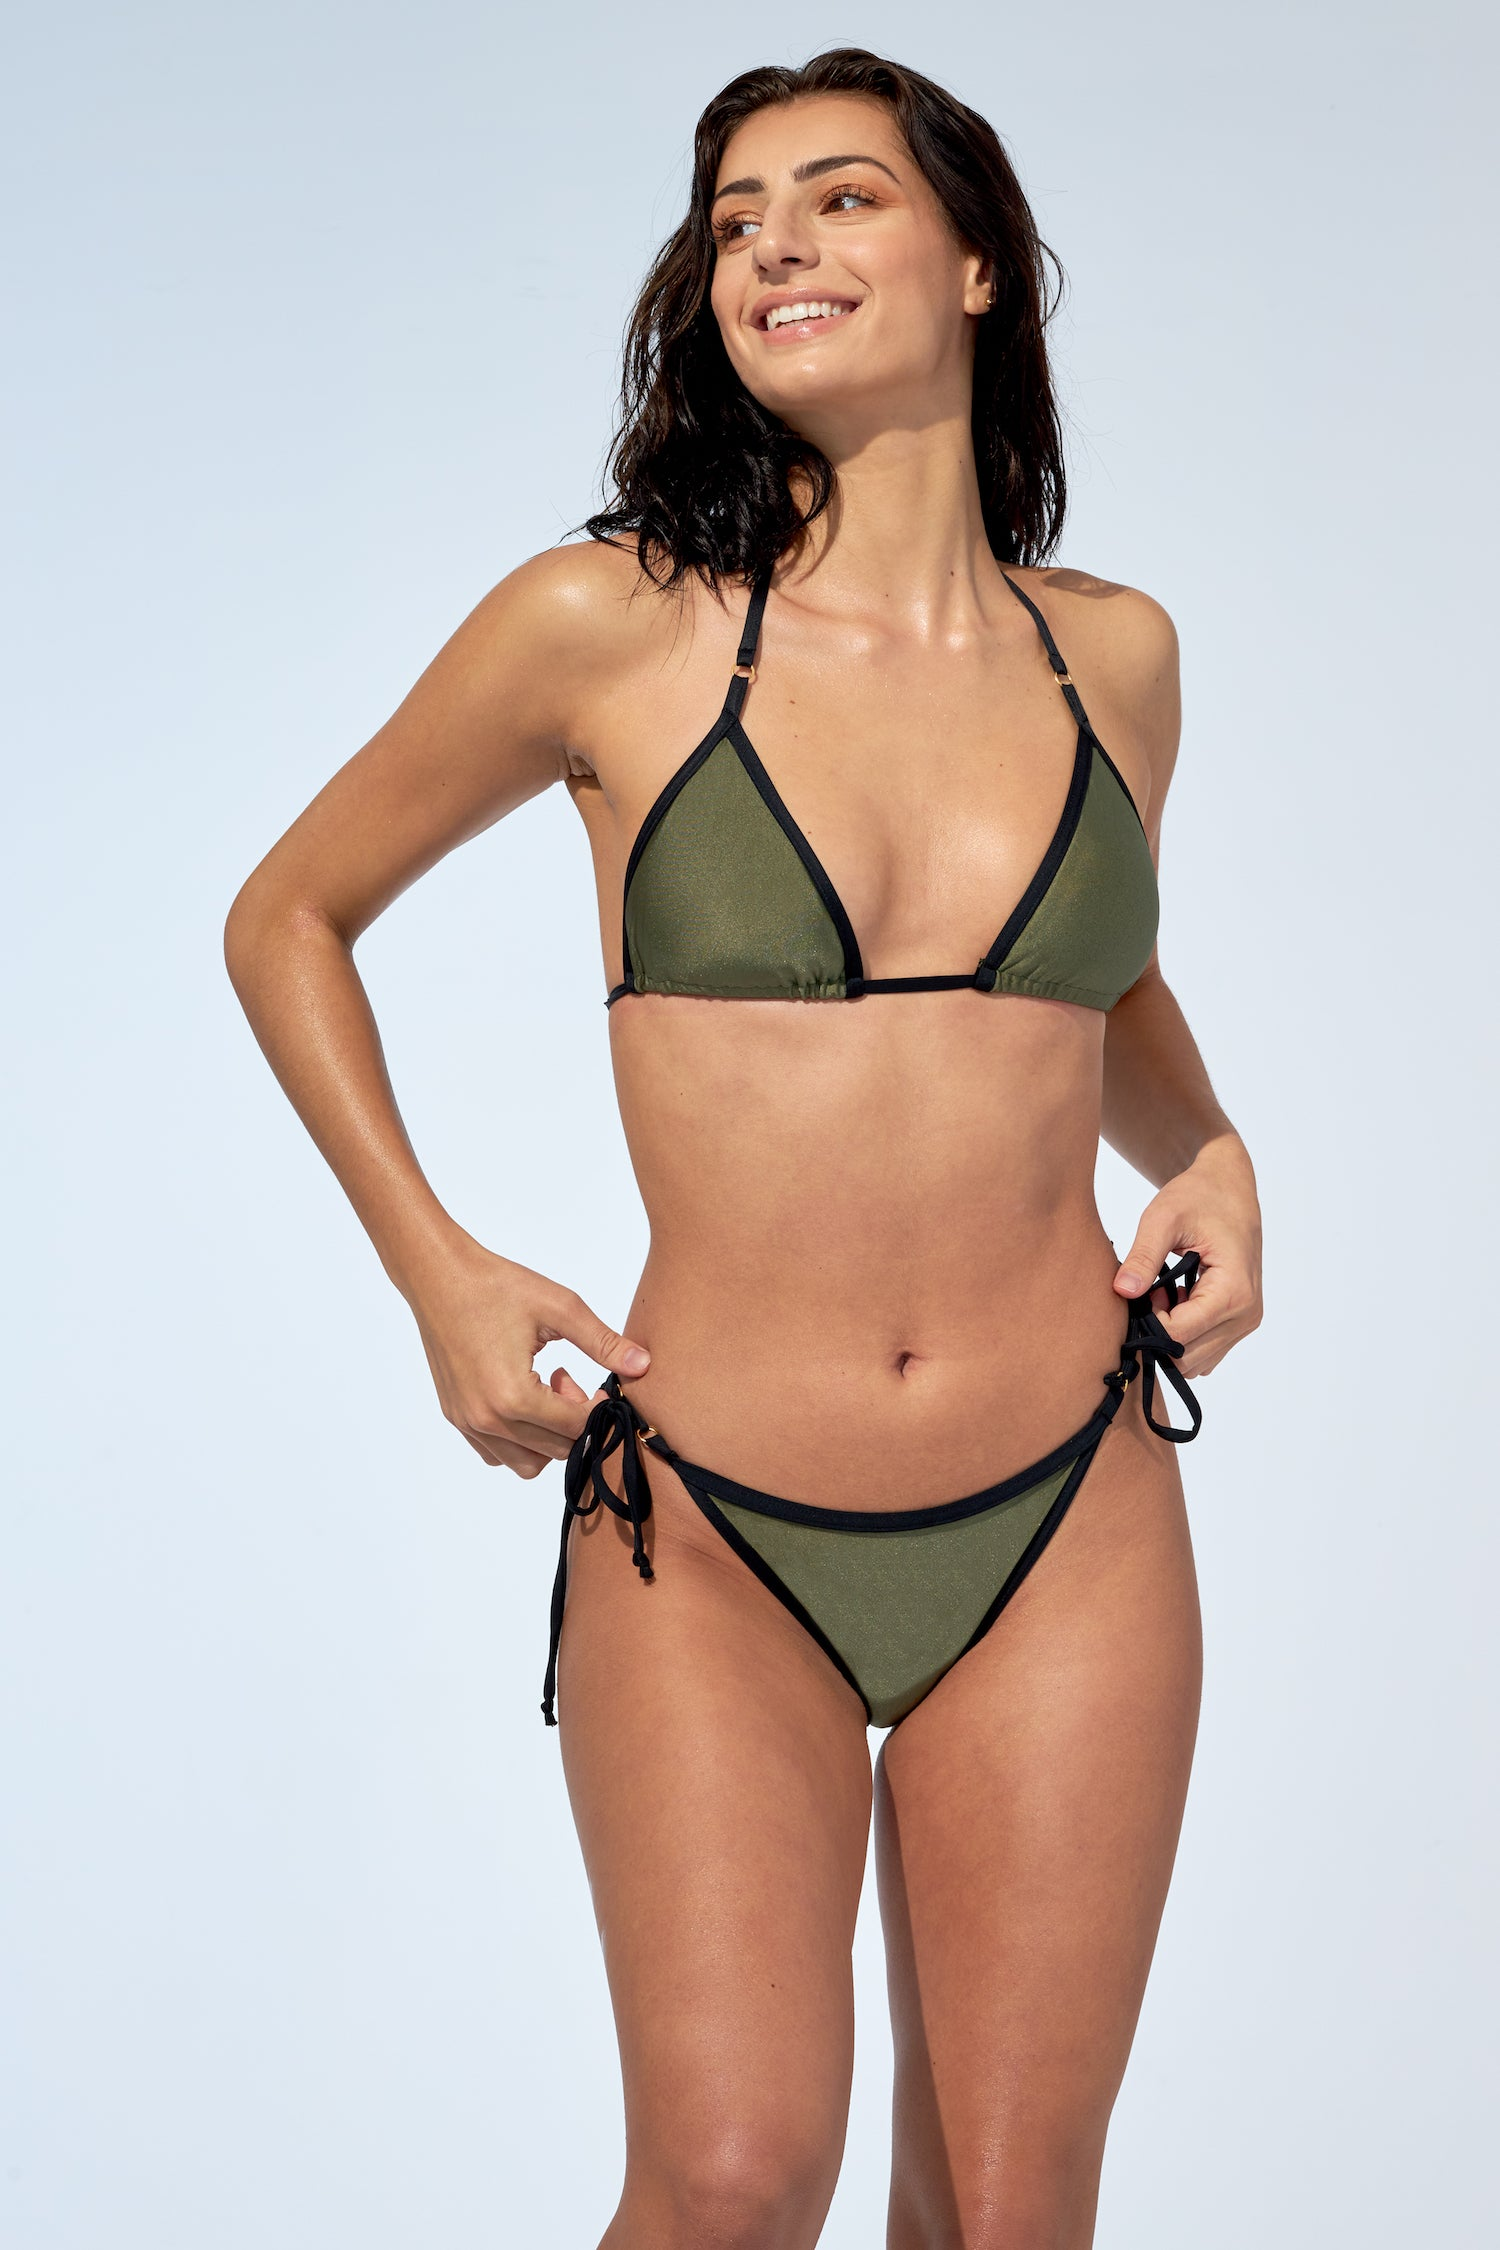 Women swimsuit, triangle bikini top with tied side bottom in a shinny khaki colour.